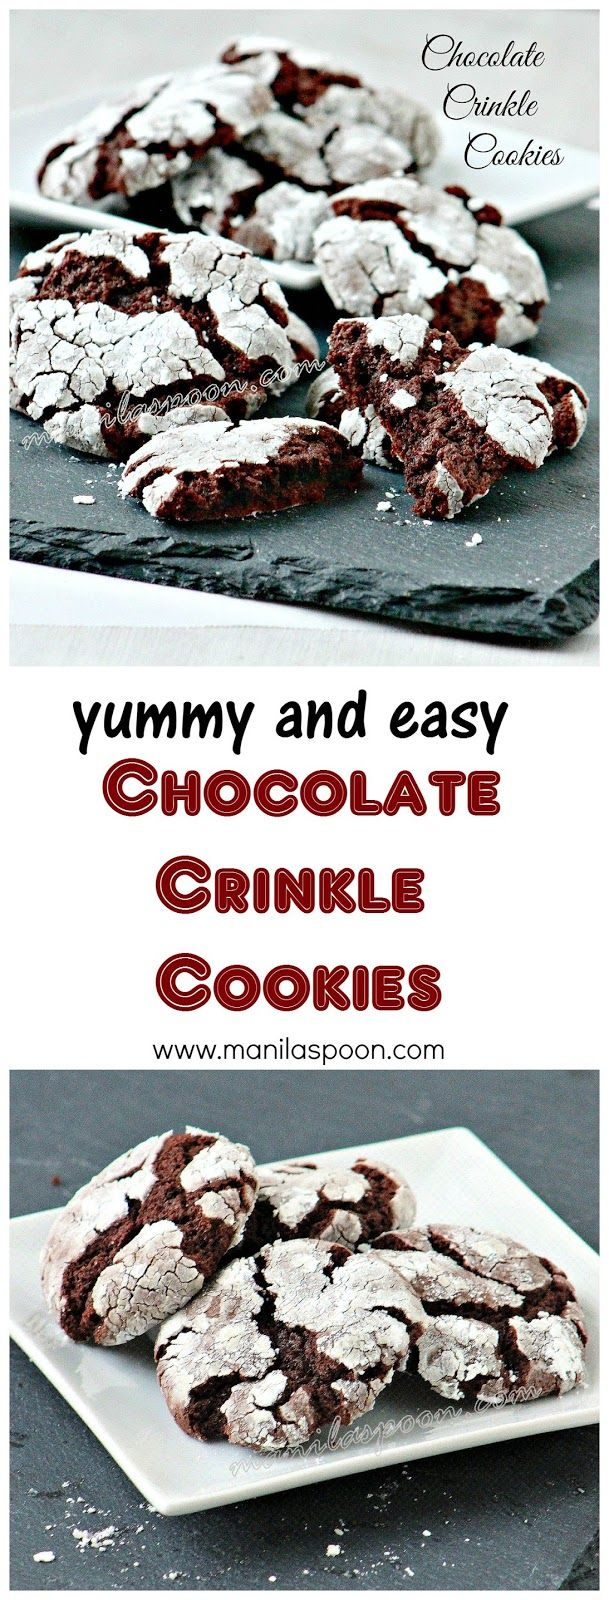 Fudgy, chewy, sweet and oh so yummy - Chocolate Crinkle Cookies. So easy to make as well. Perfect for the holidays!! | manilaspoon.com